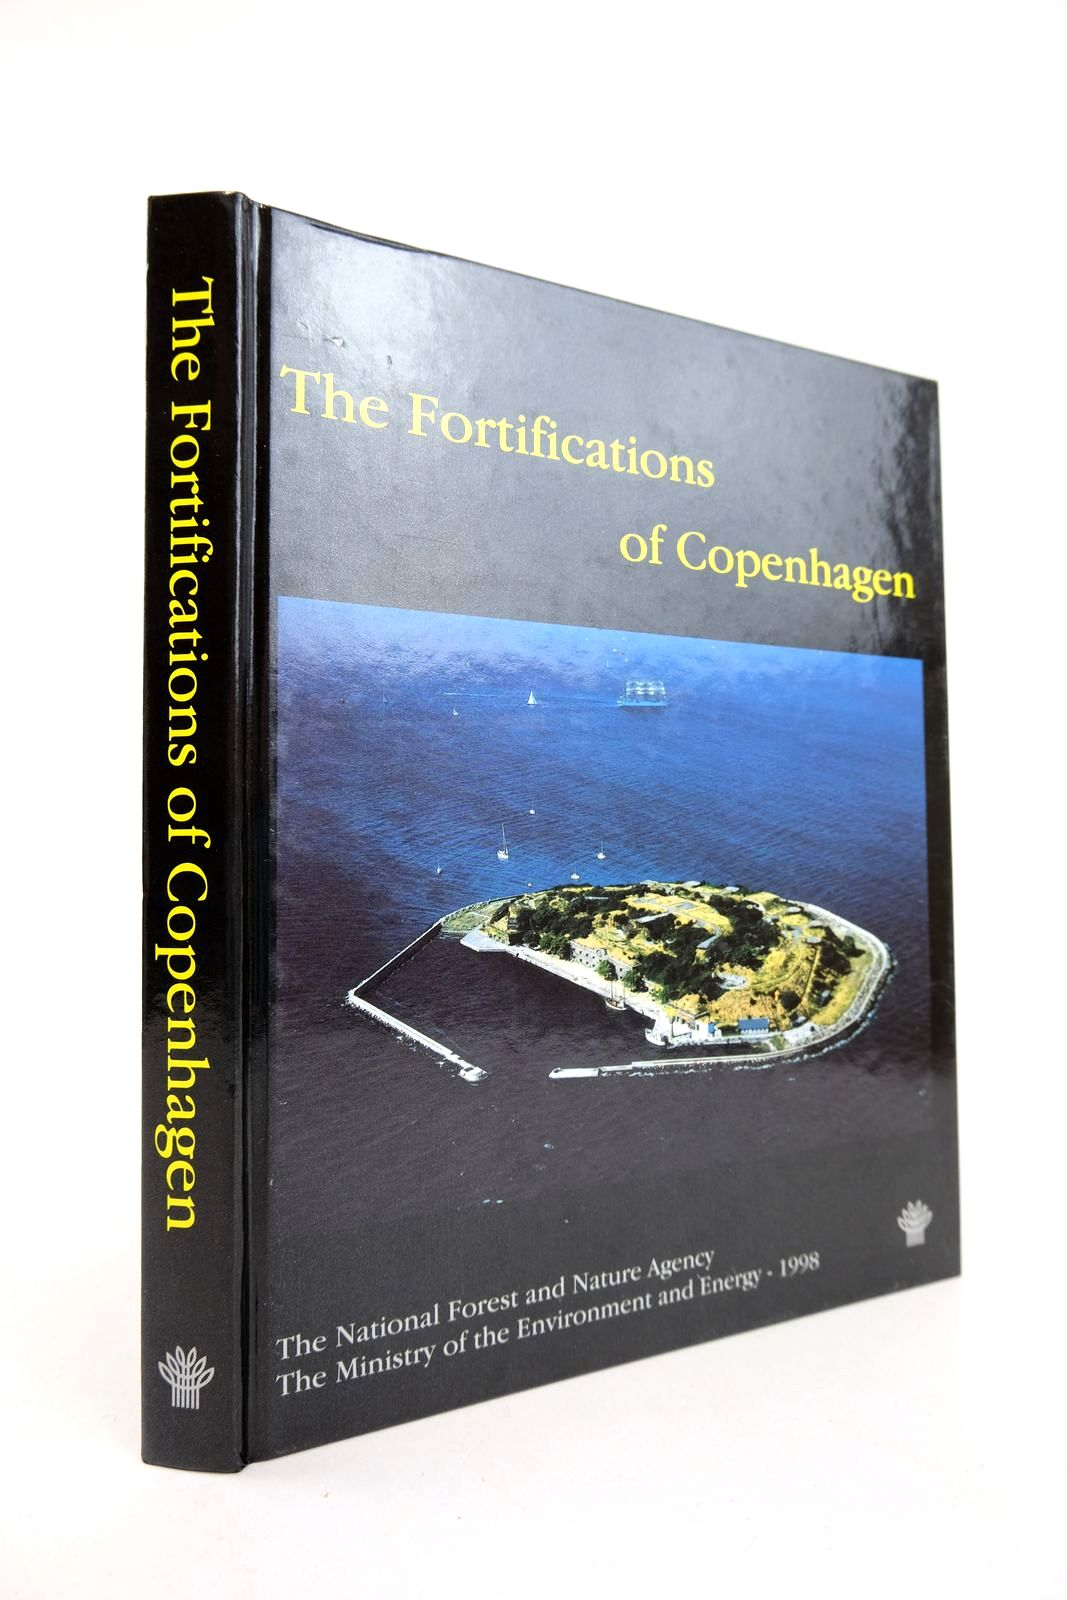 Photo of THE FORTIFICATIONS OF COPENHAGEN written by Skaarup, Bi Dahl, Bjorn Westerbeek Christensen, Peter Thorning published by The National Forest And Nature Agency (STOCK CODE: 2132790)  for sale by Stella & Rose's Books